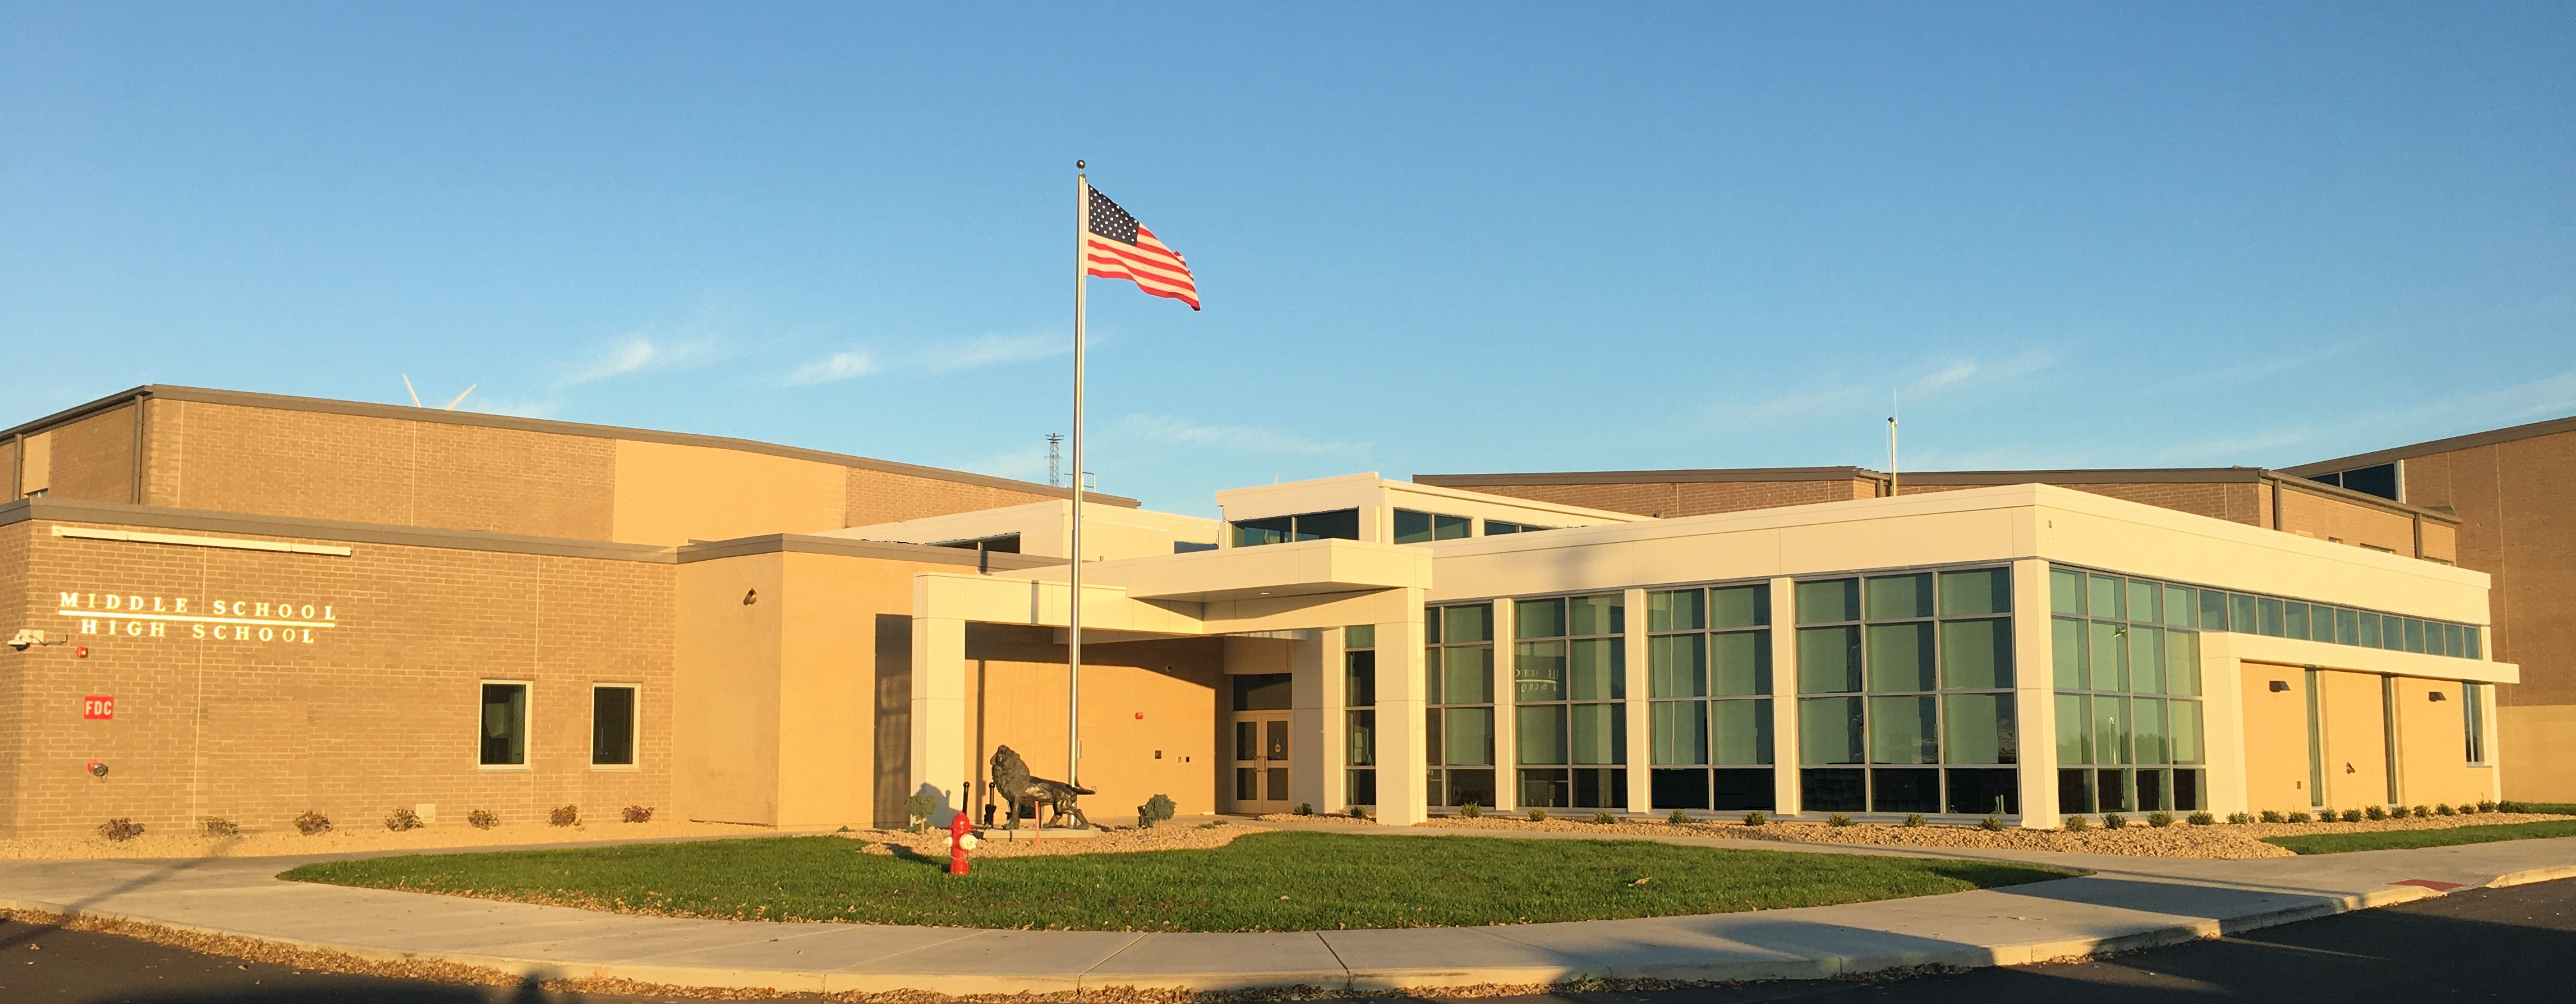 Wynford Middle/High School